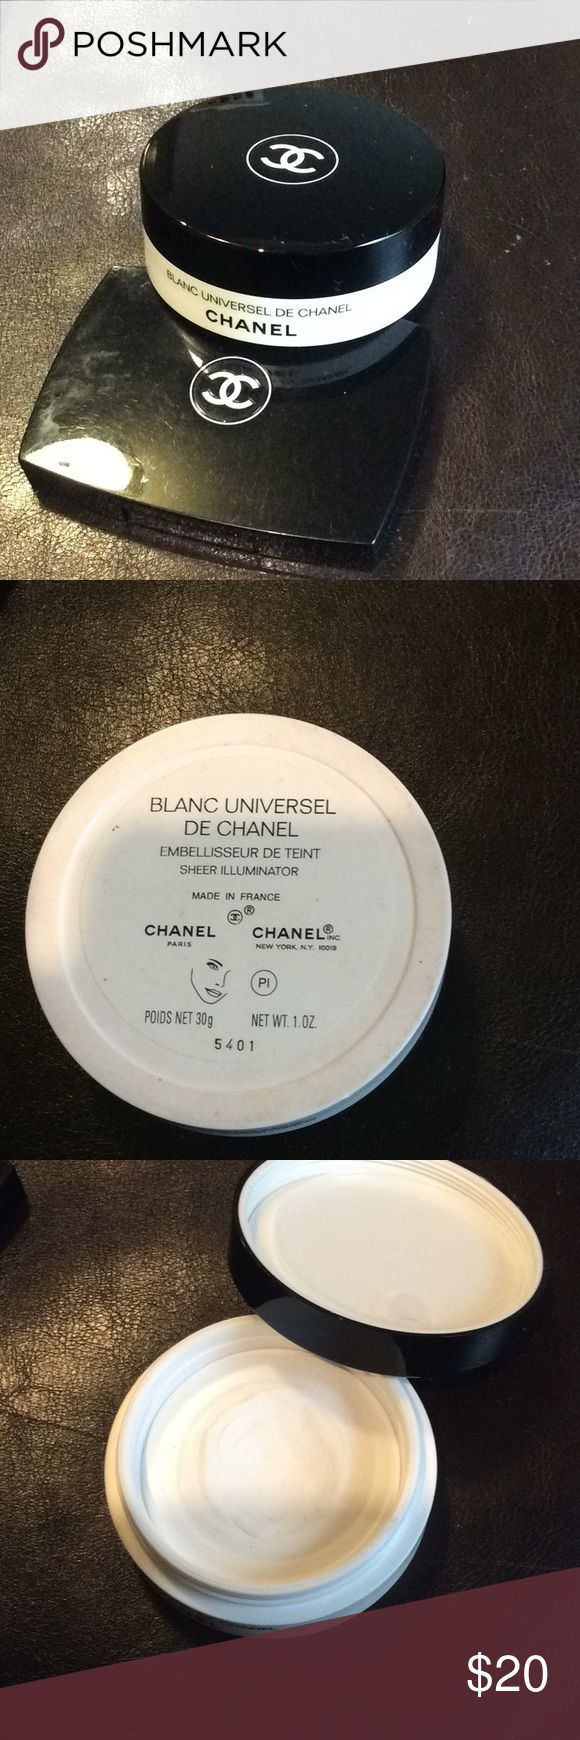 Chanel Blanc Universal De Chanel w/ mirror compact Chanel sheer illuminator has been used a few times.  This can be used under your foundation or as un under eye illuminator or over your make up for a sheer glow.  I am including a mirrored compact that used to be a bronzer but I took the pan out and used as a touch up mirror in my bag. CHANEL Makeup Luminizer